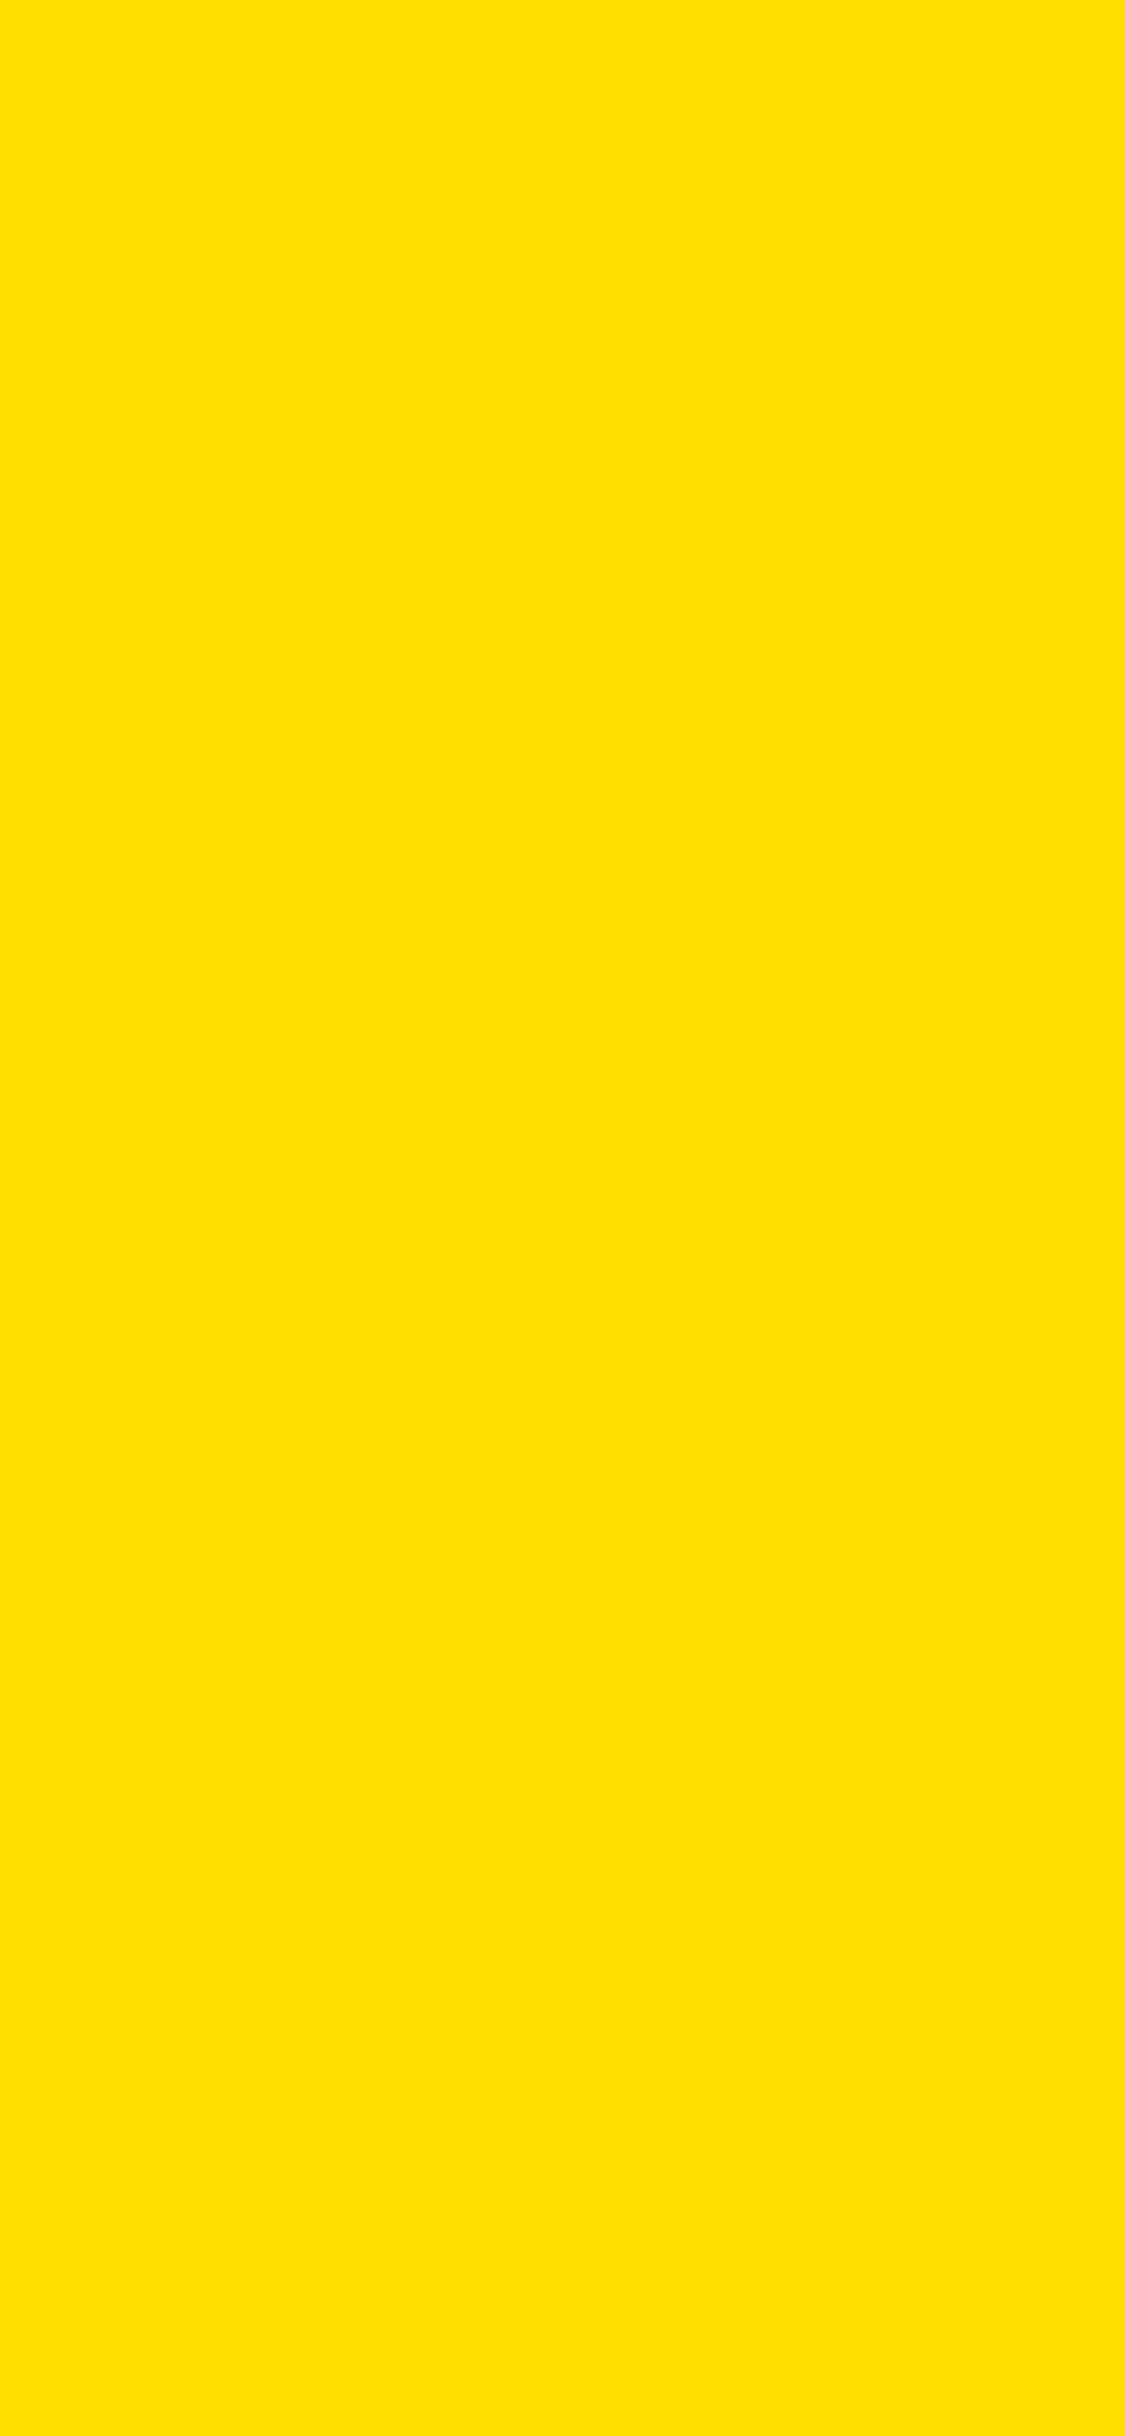 1125x2436 Yellow Pantone Solid Color Background